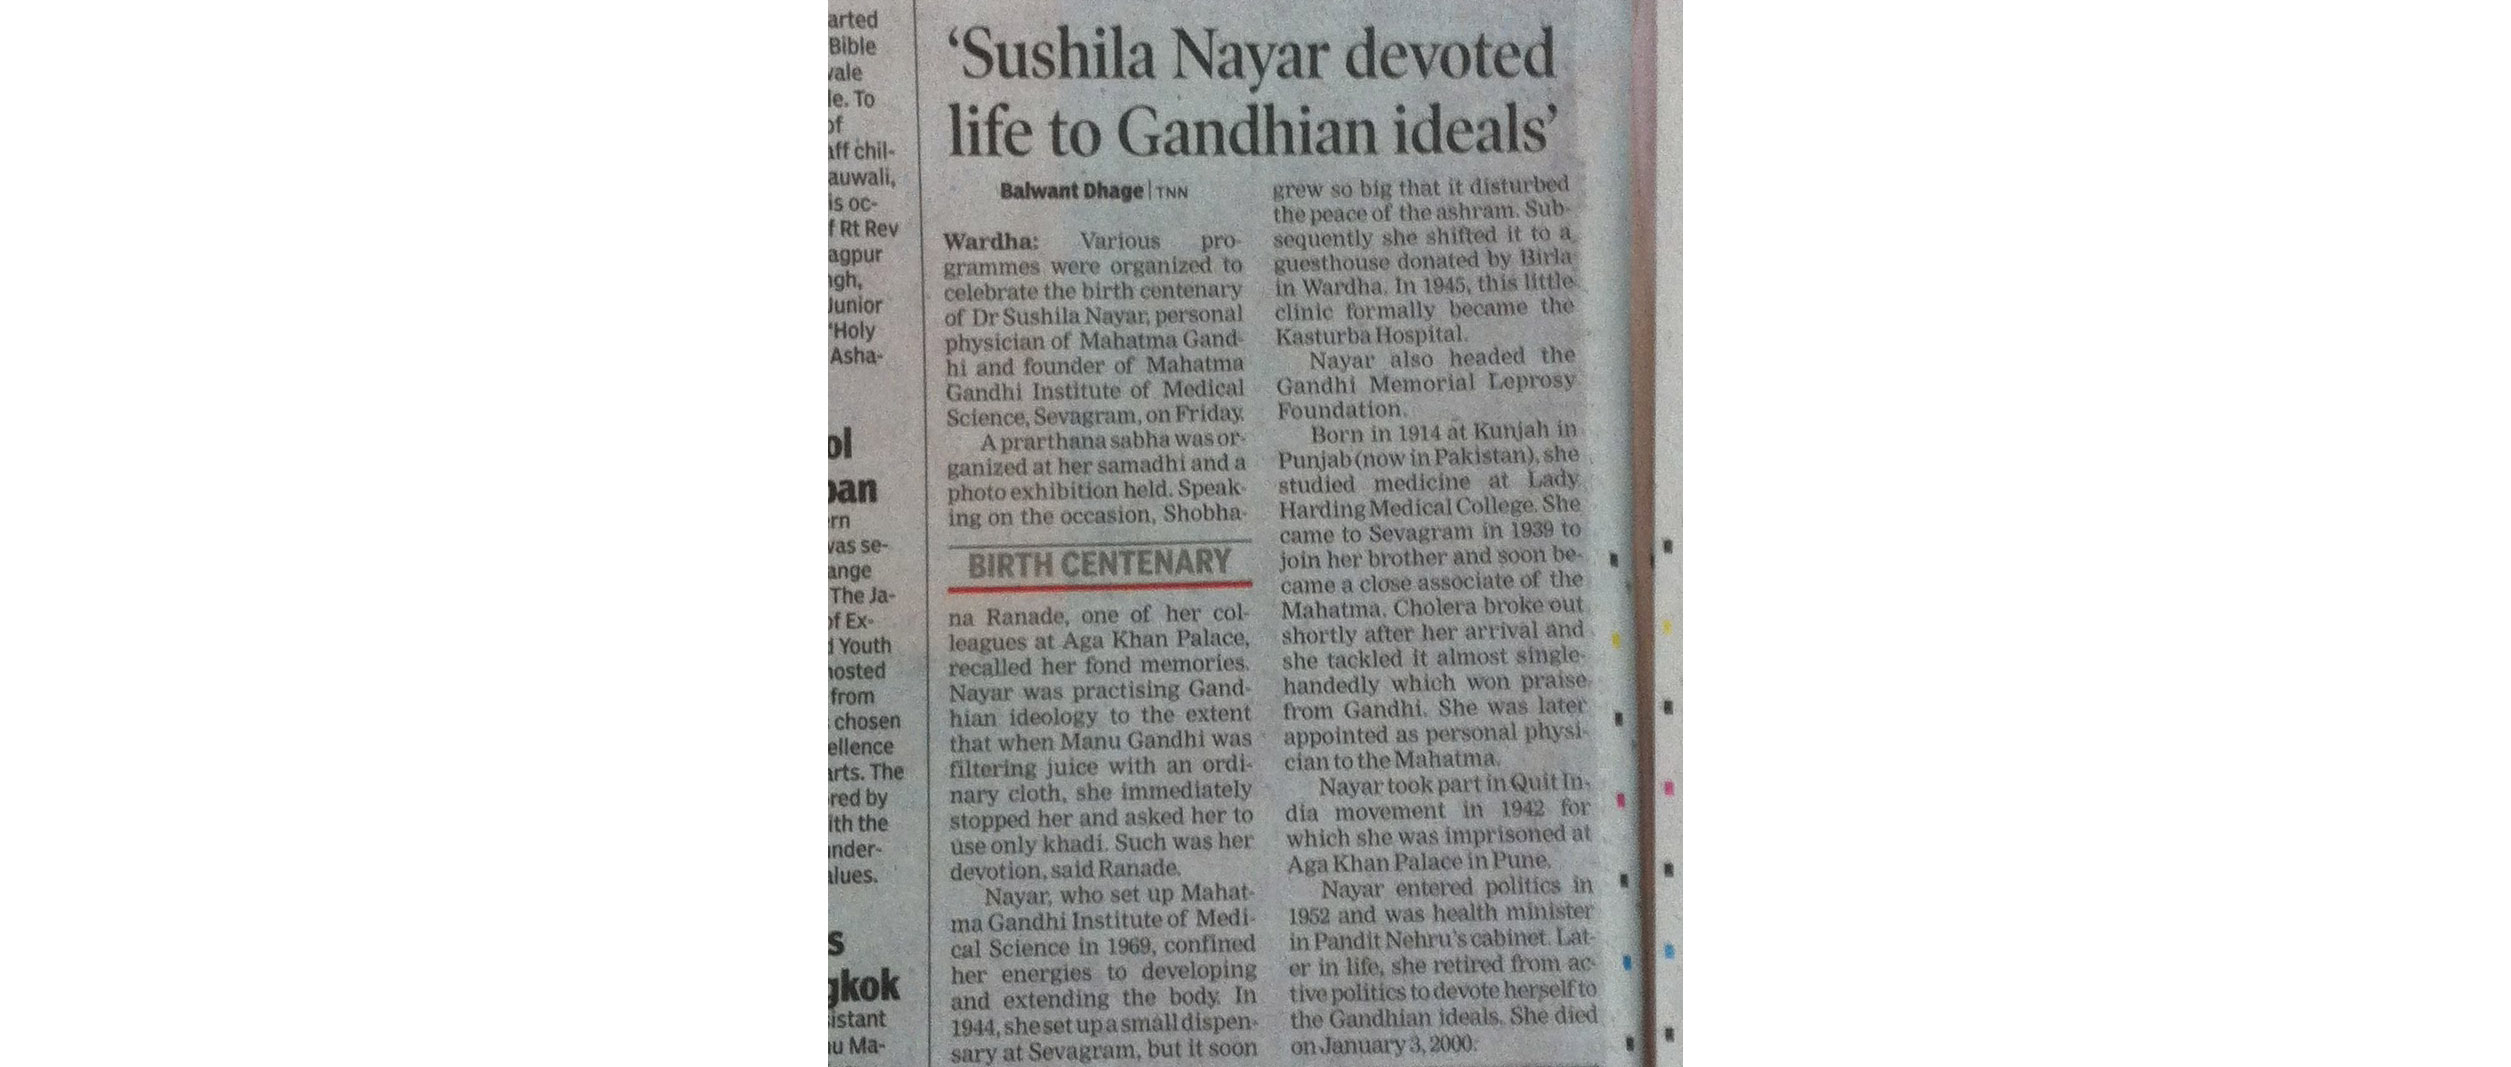 Times of India - 27/12/2014